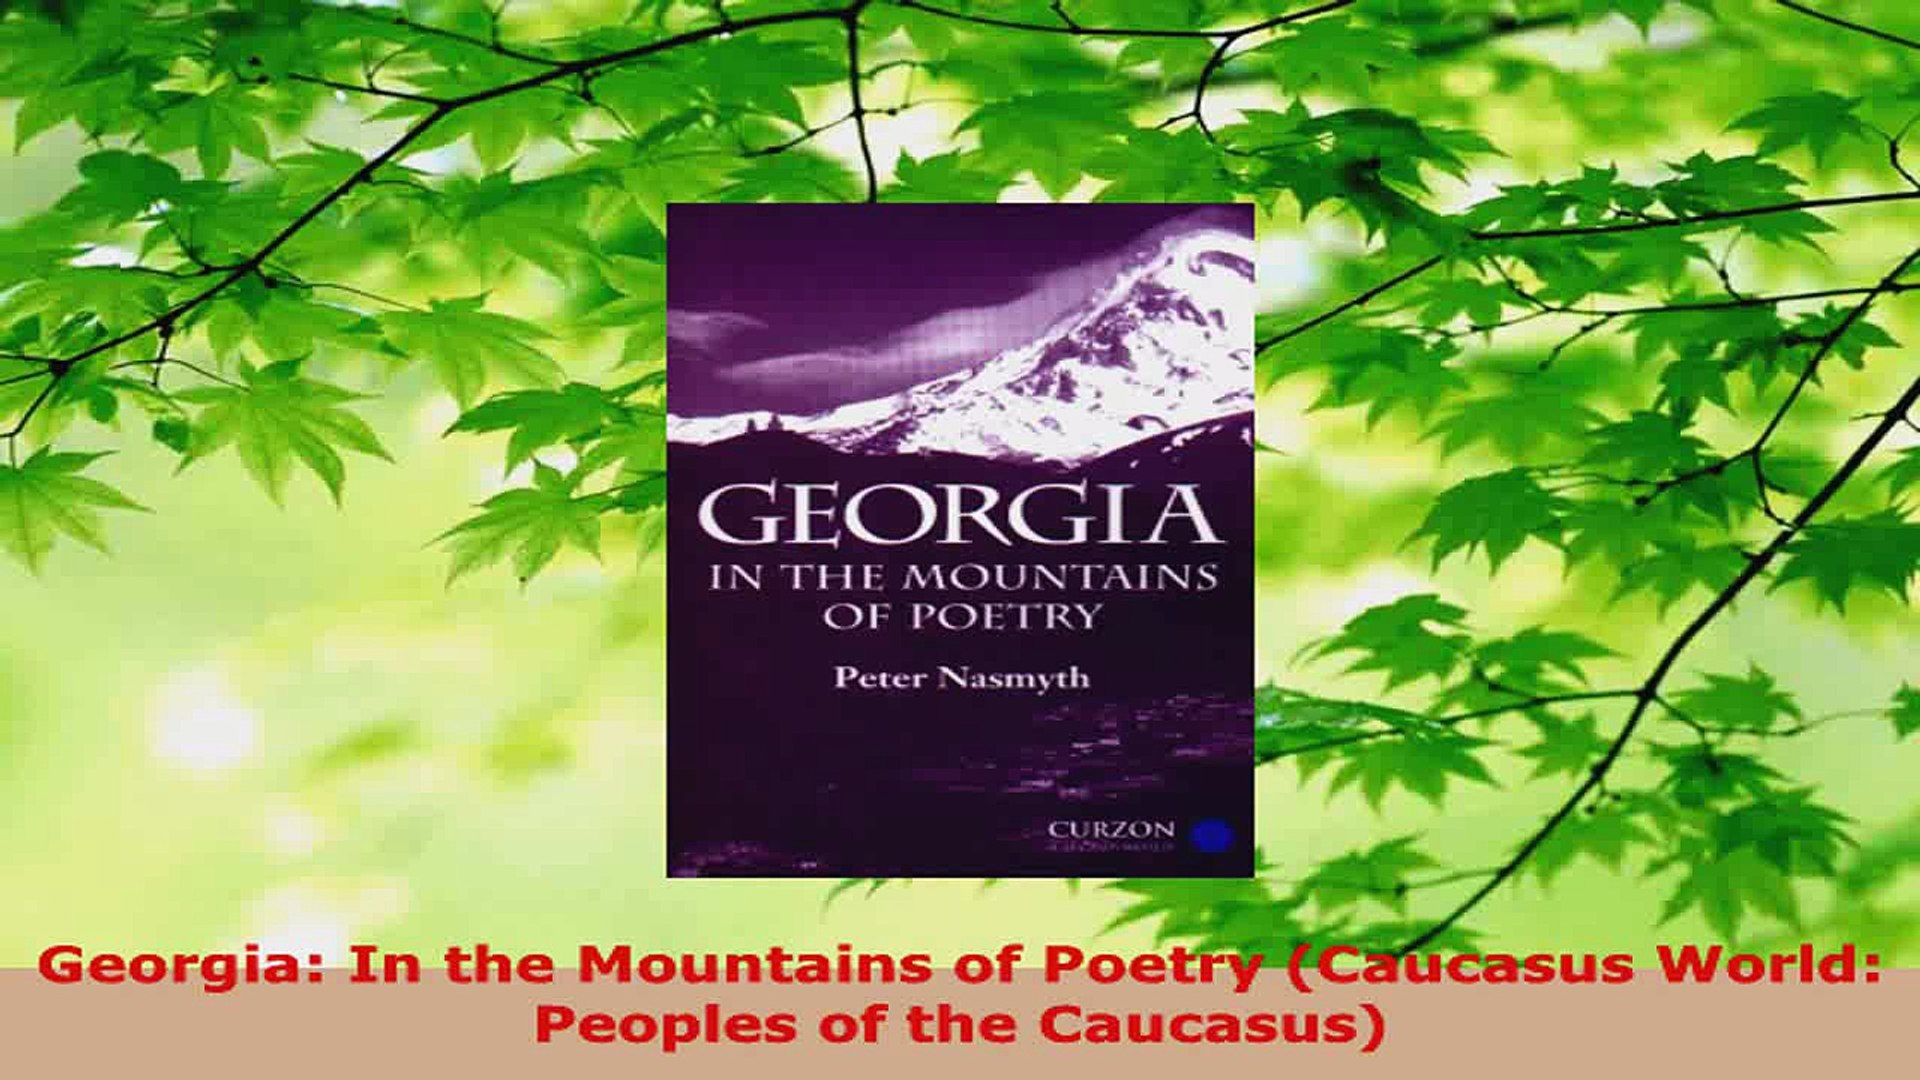 Download  Georgia In the Mountains of Poetry Caucasus World Peoples of the Caucasus Ebook Free